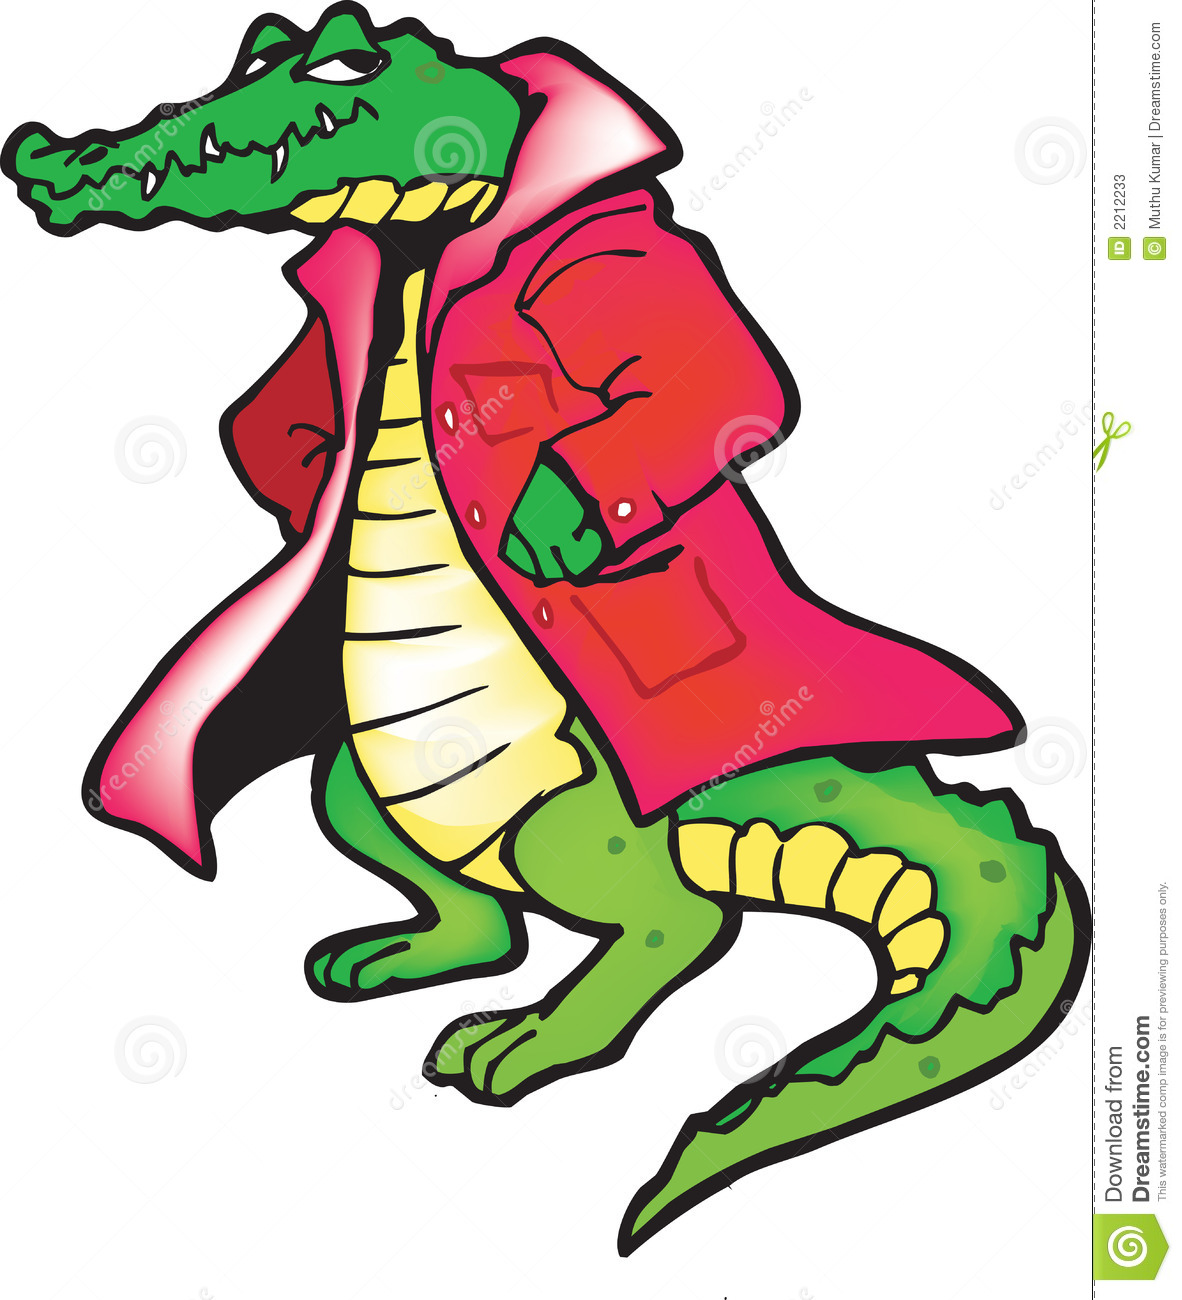 Crocodile Drawing | Clipart Panda - Free Clipart Images